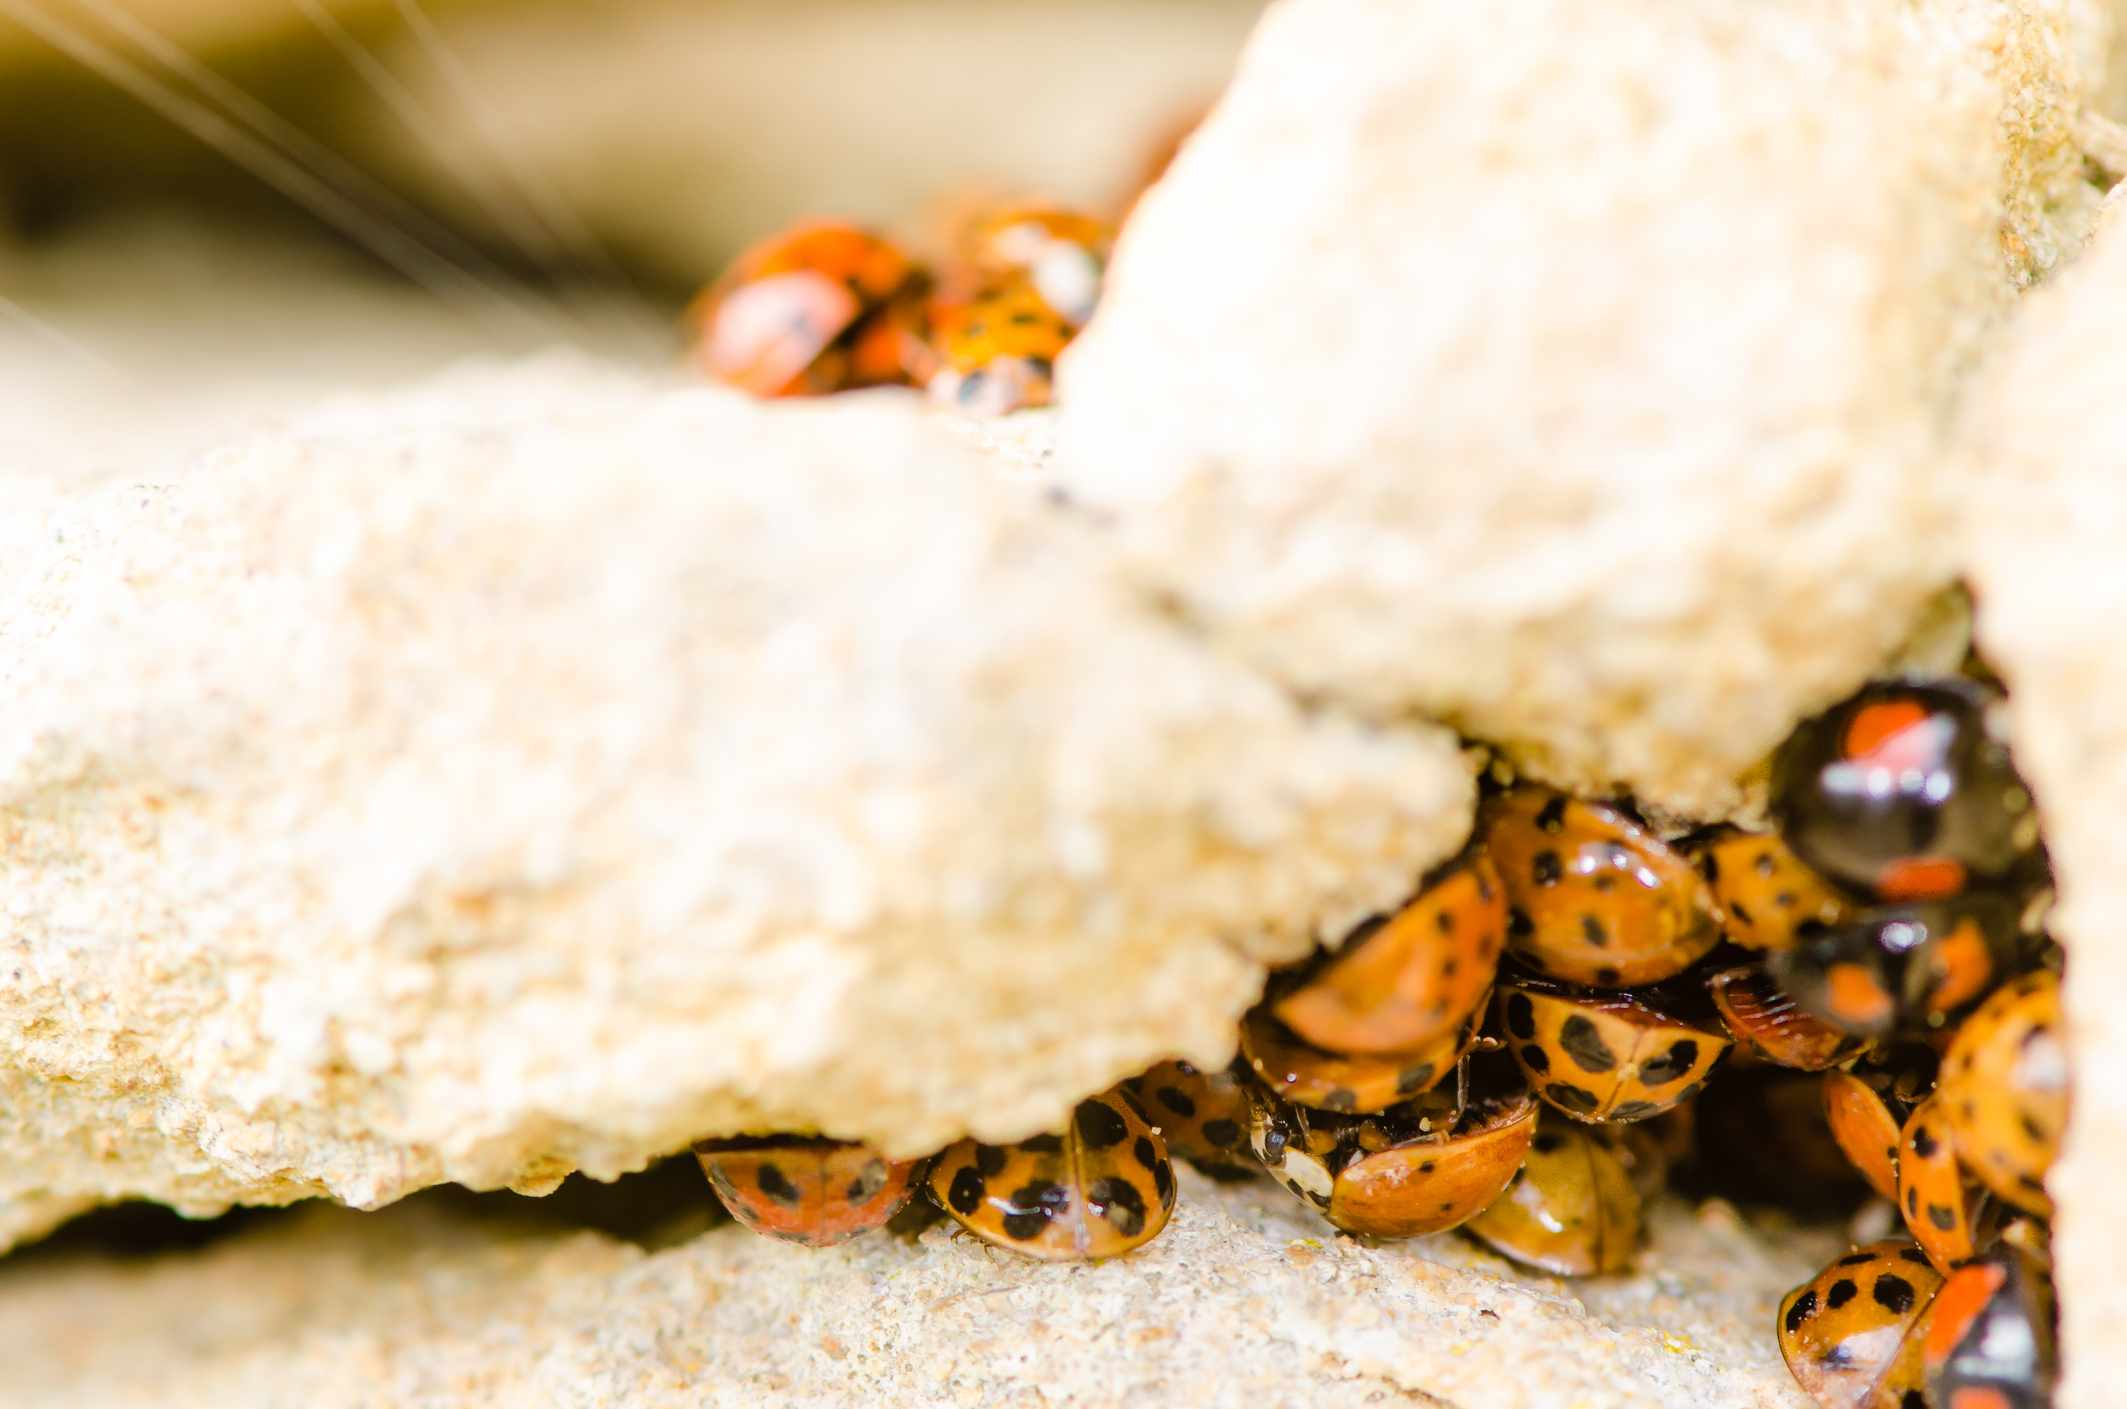 Harlequin ladybirds emerging on a sunny spring day in the UK. © Ian Redding/Getty